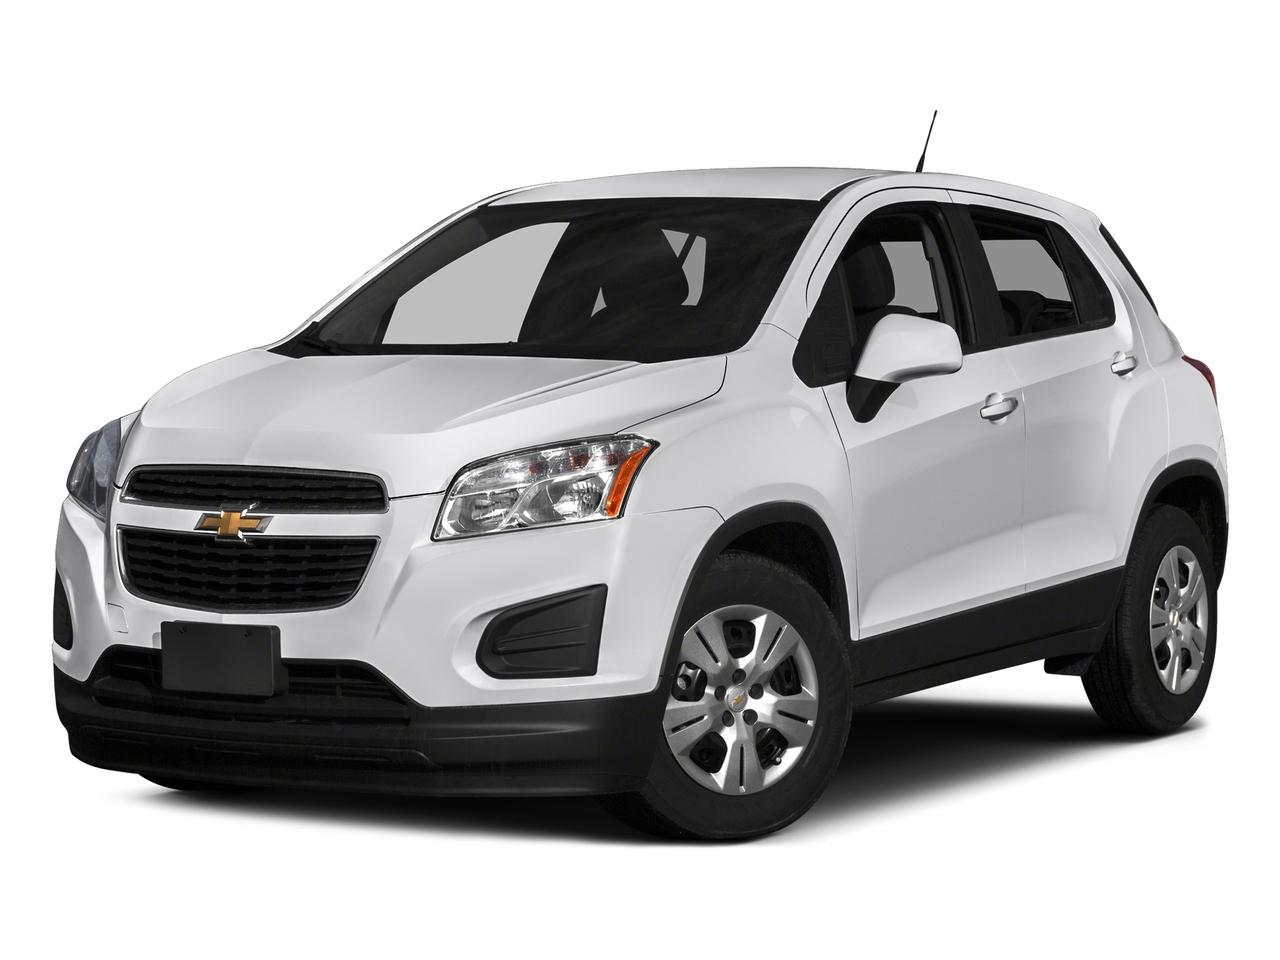 2016 Chevrolet Trax Vehicle Photo in Willoughby Hills, OH 44092